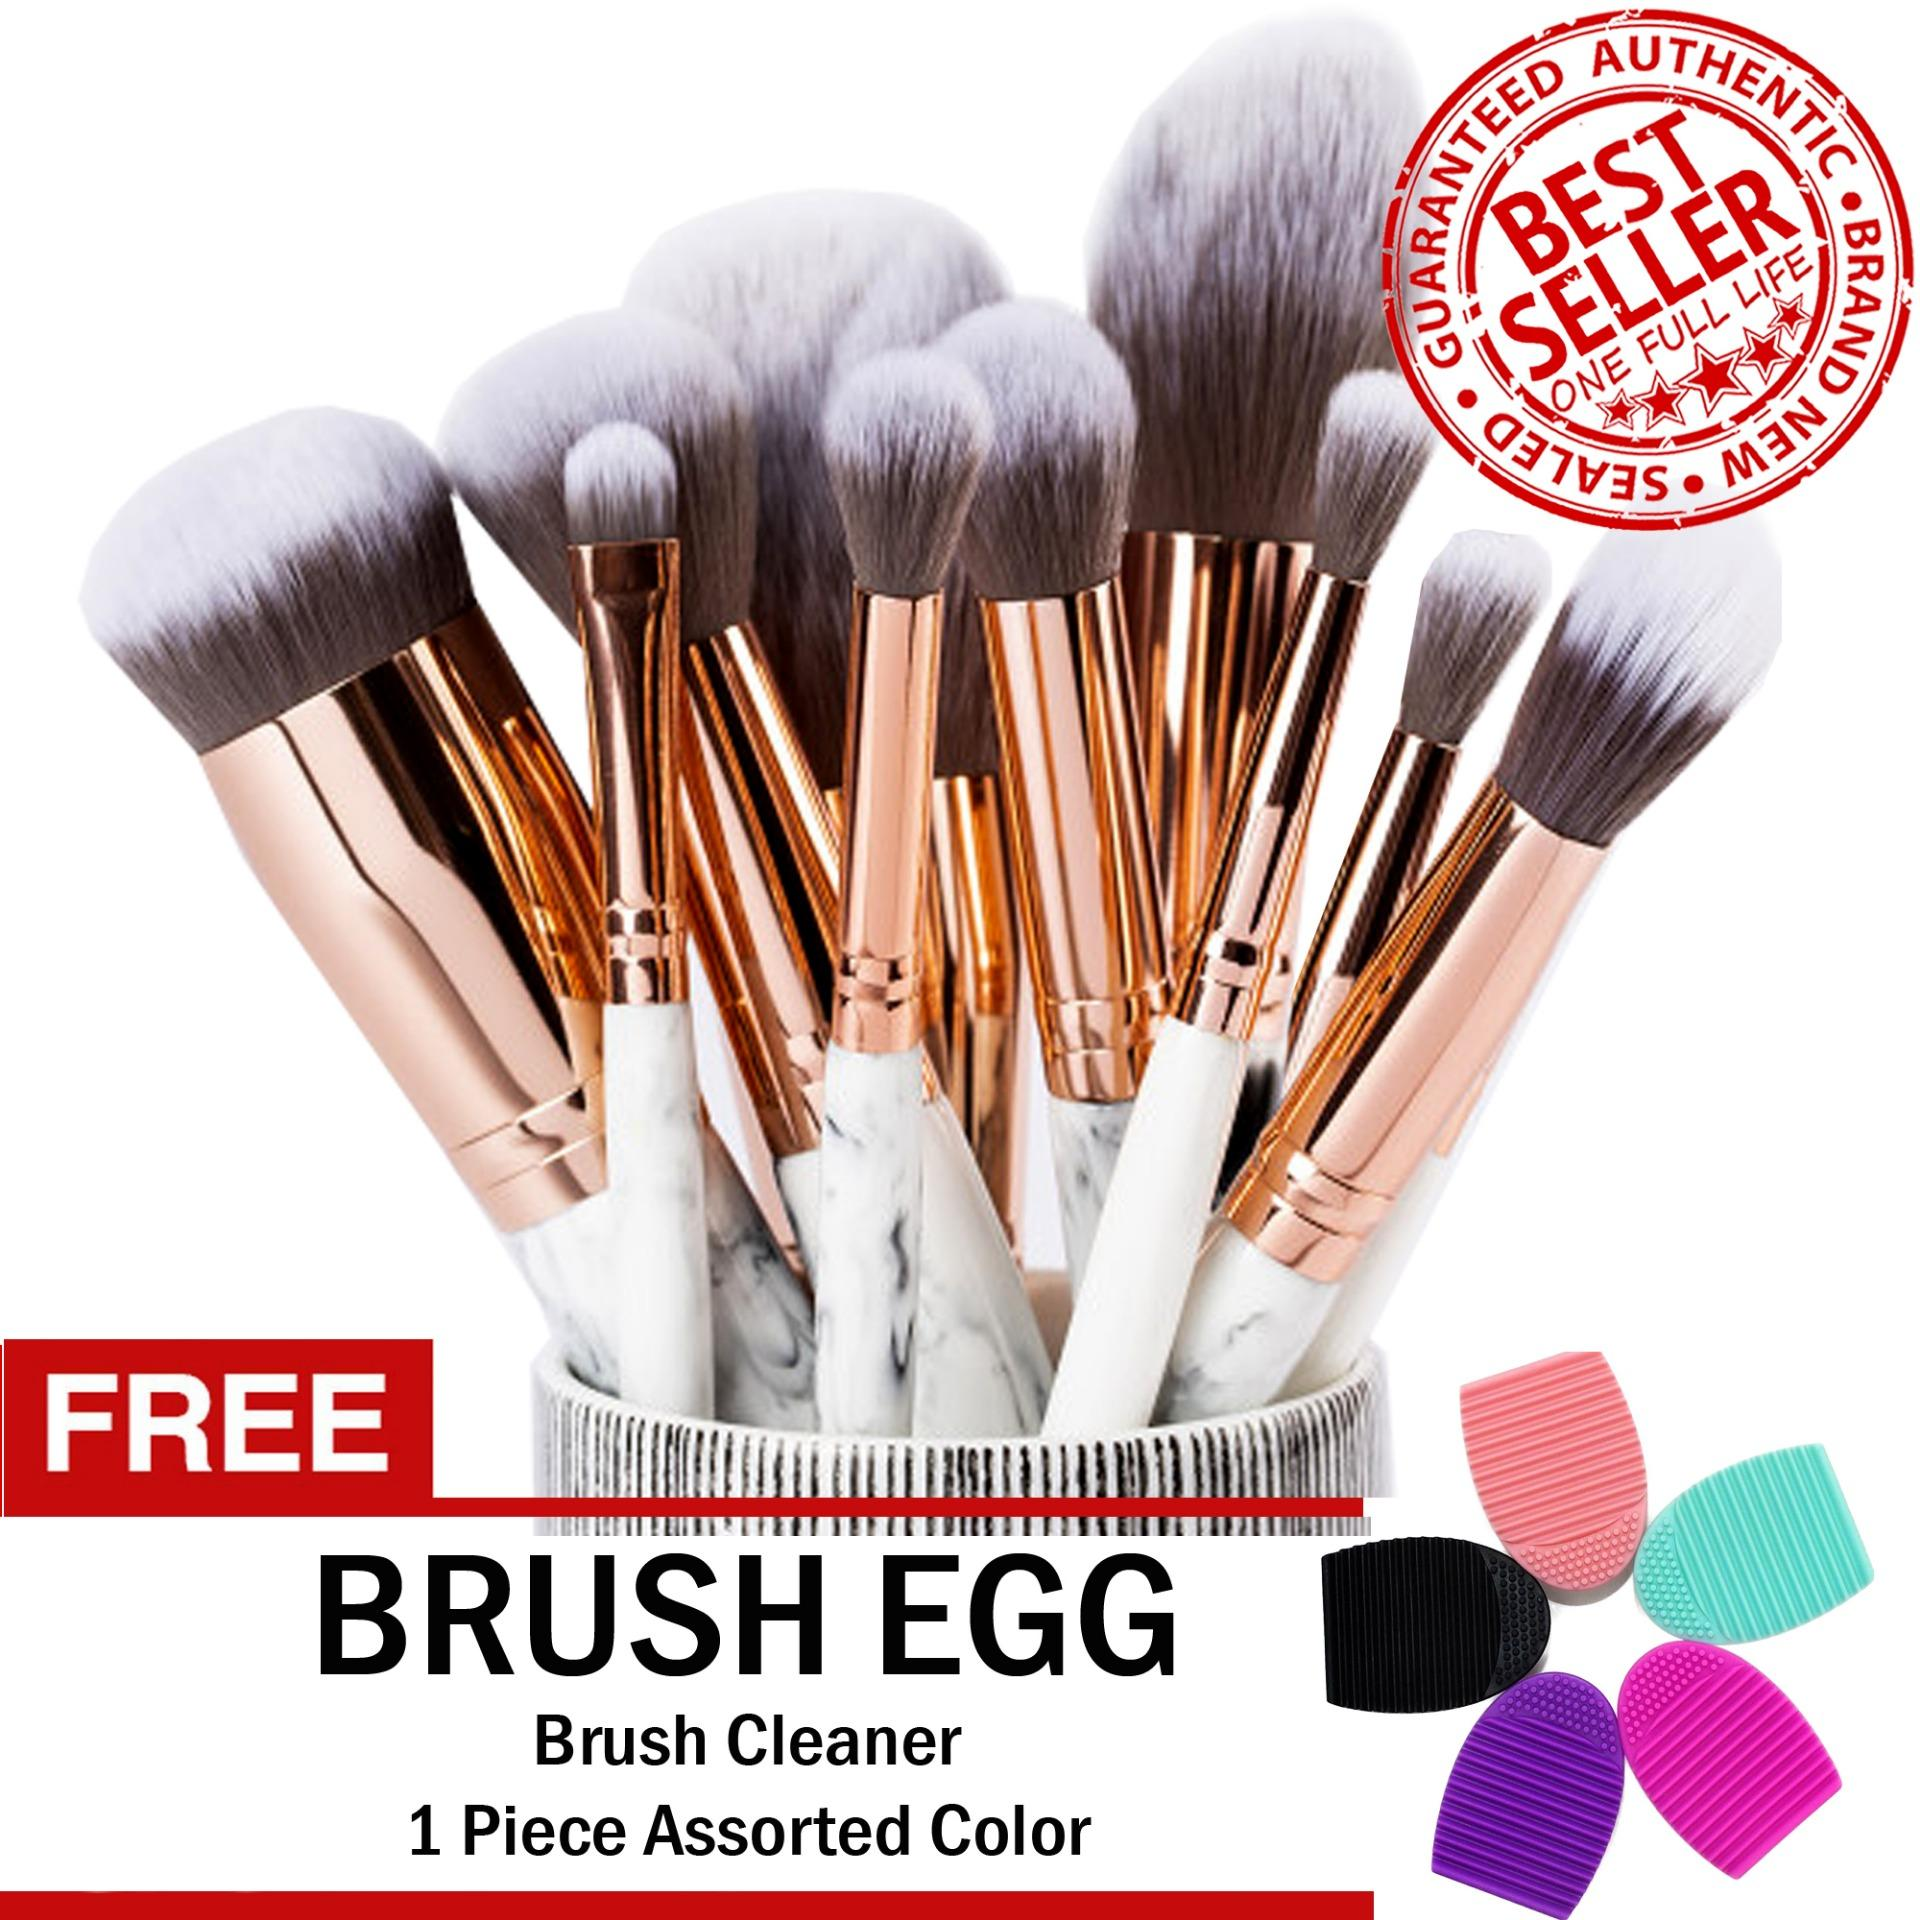 Marble Professional Make Up Brush Set 10 Pieces GRAY FREE Brush Egg Philippines